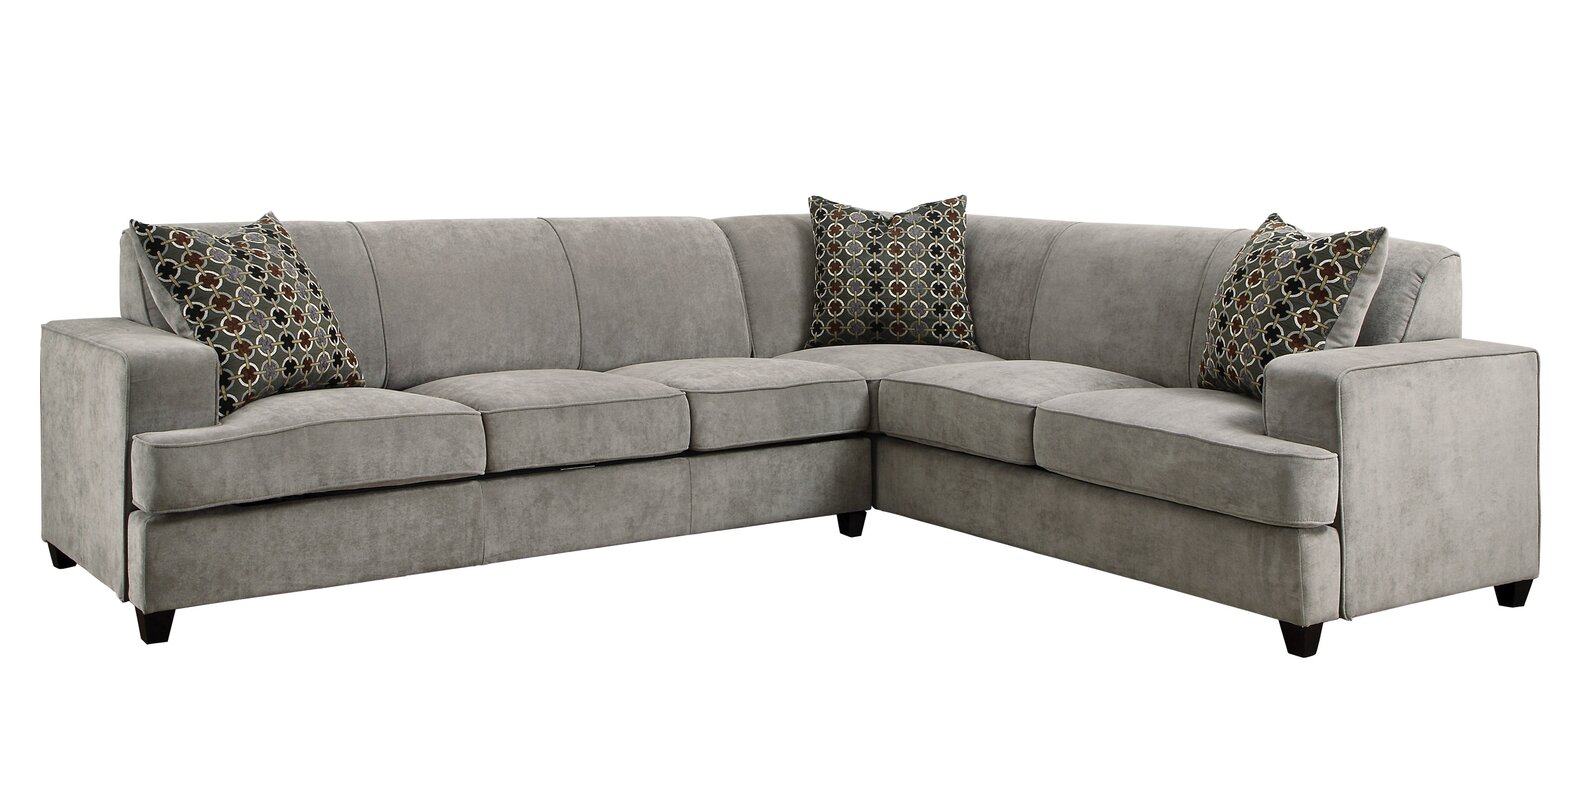 canada with products sectionals sleeper store memories furniture showhome in img made sofas sectional calgary custom